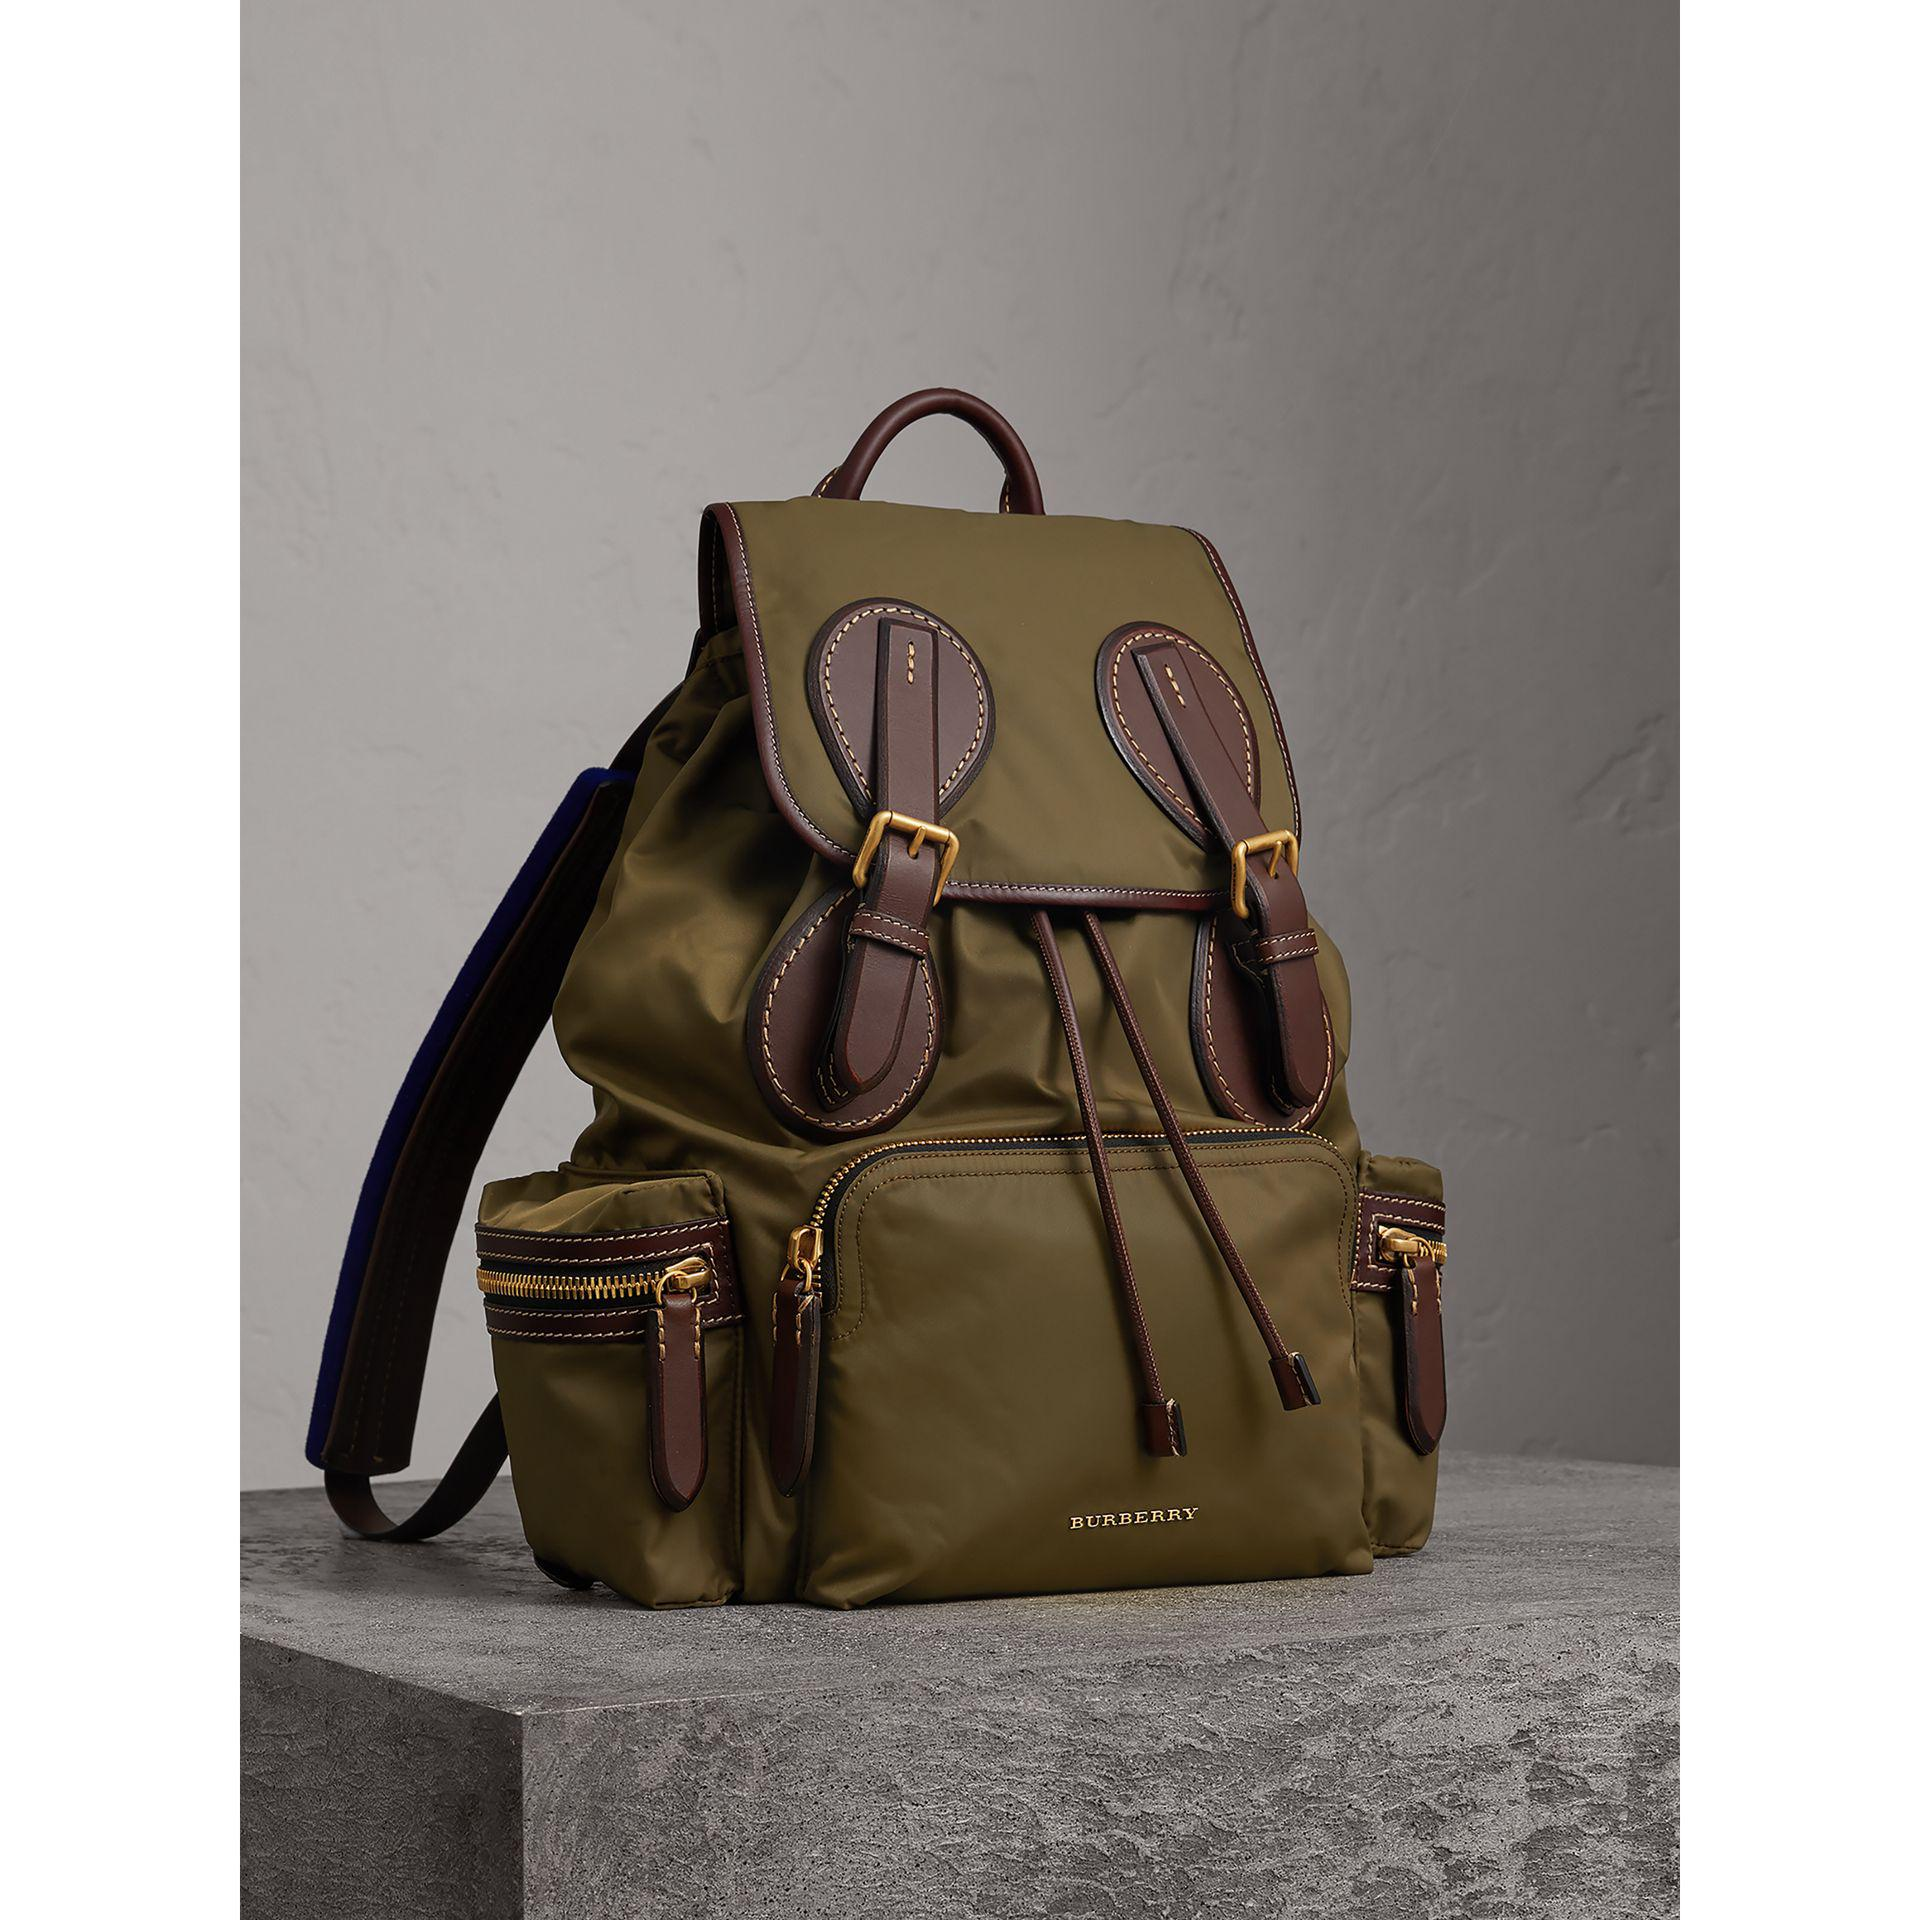 caef8b5b170c Burberry The Large Rucksack In Technical Nylon And Topstitched ...